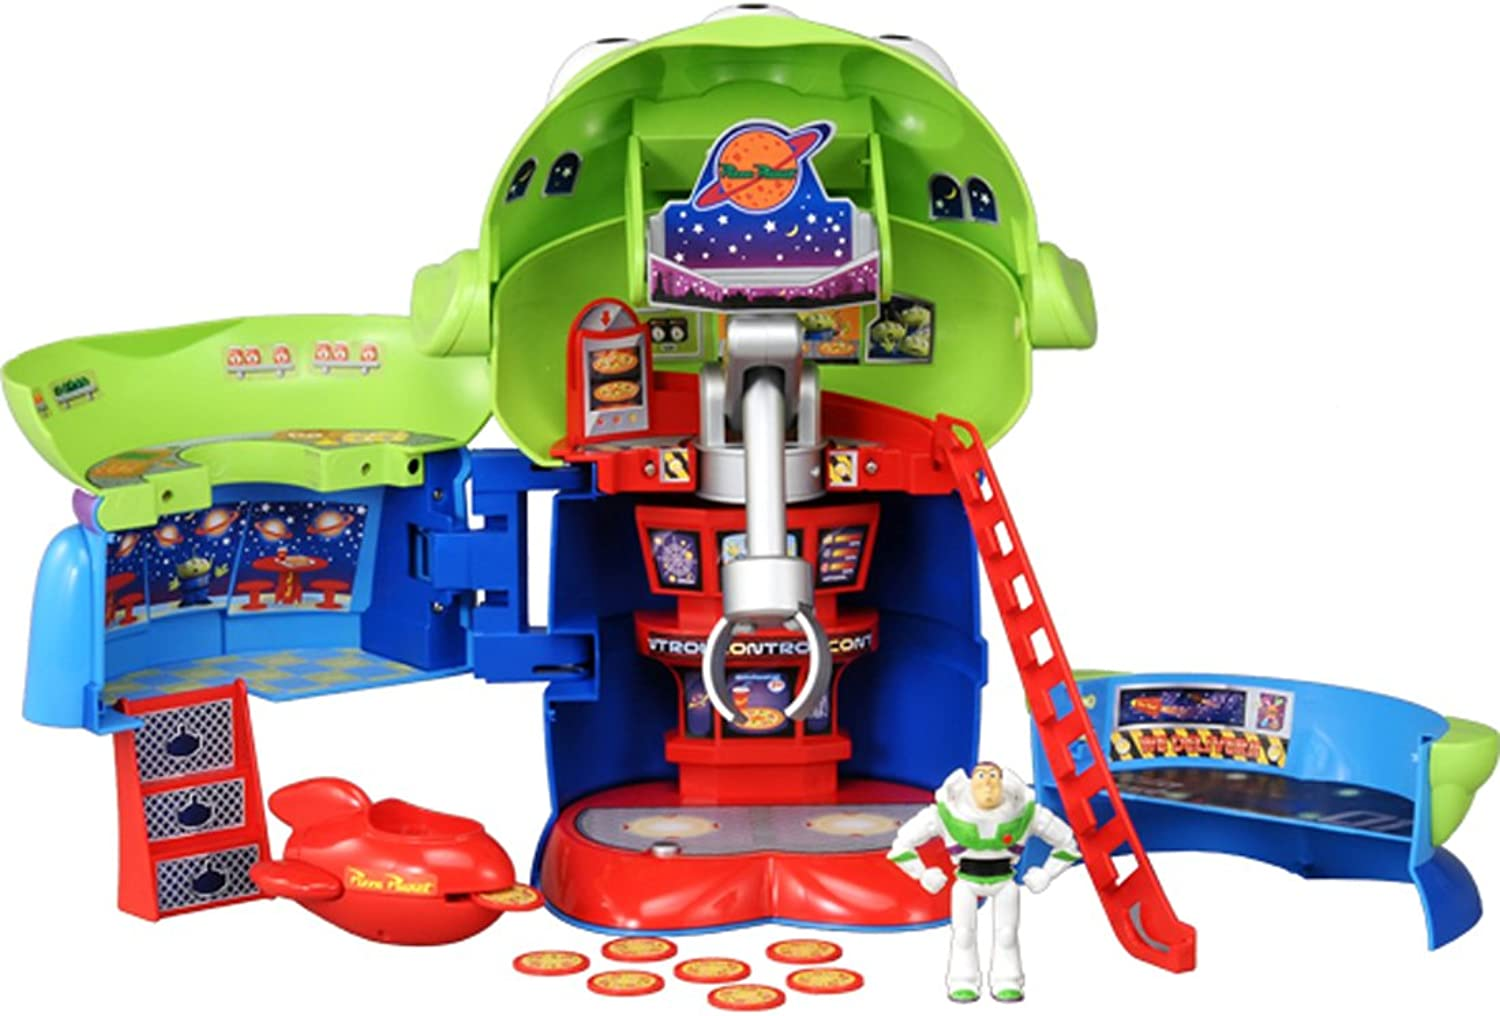 Disney Toy Story rapidly transformed into a chat collection Pizza Planet  alien